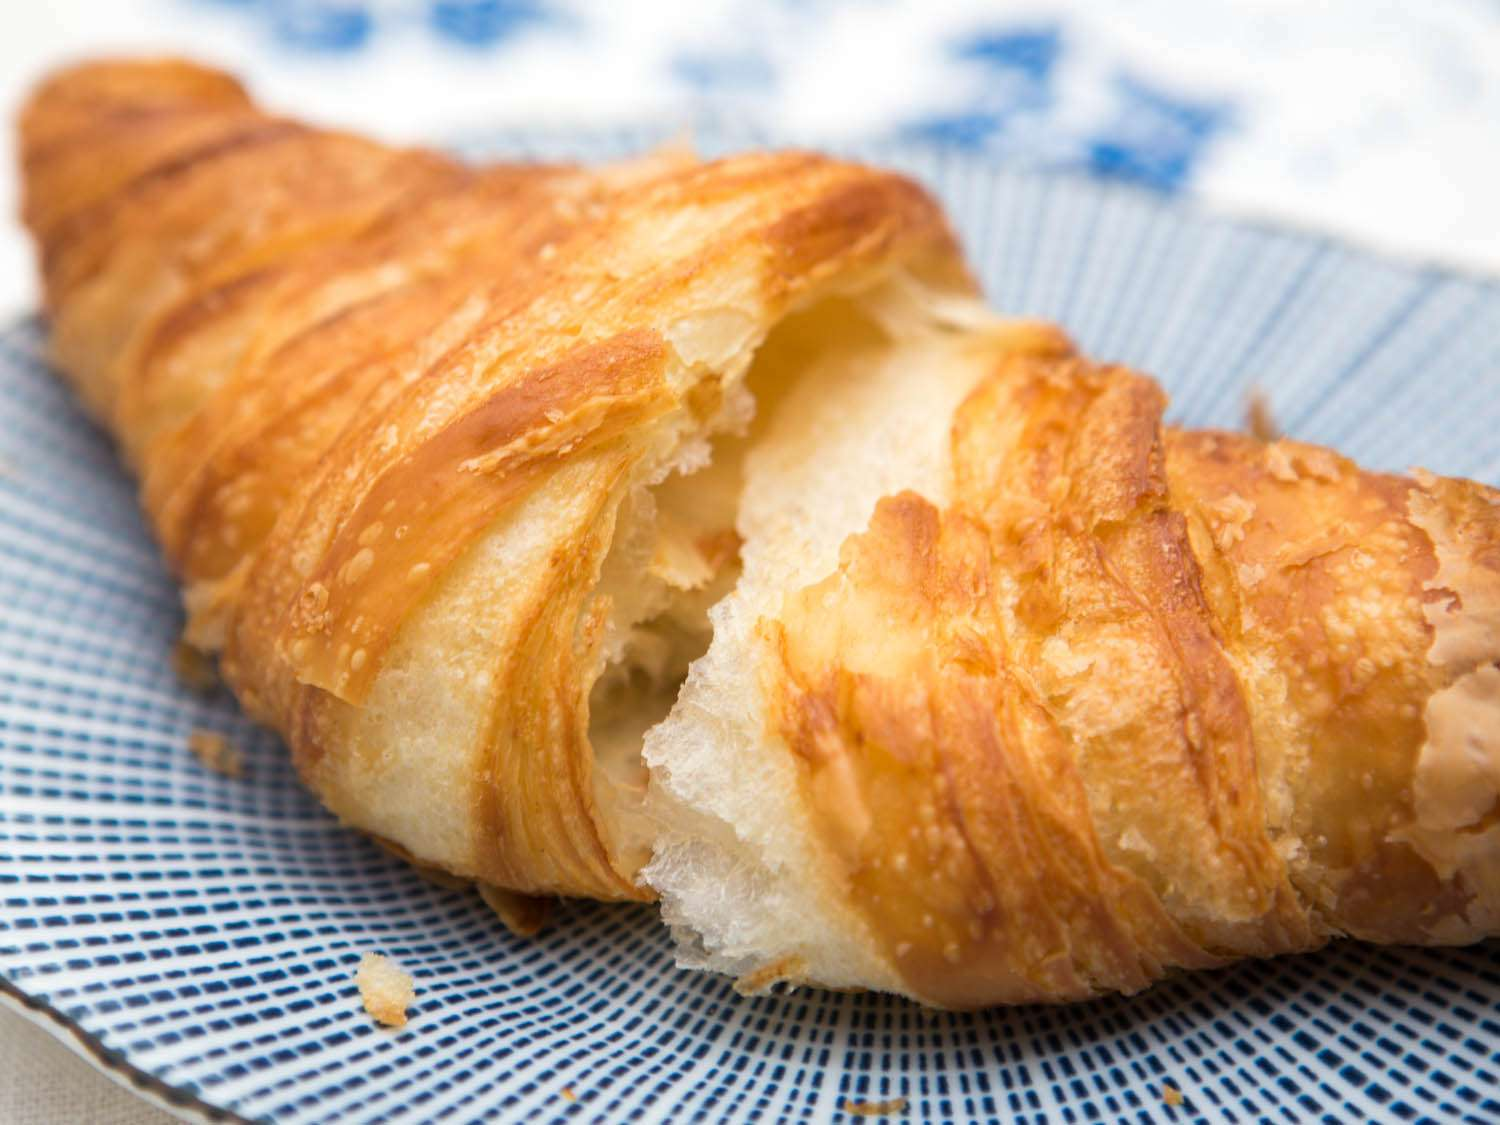 20140708-french-pastry-almondine-croissant-vicky-wasik-4.jpg